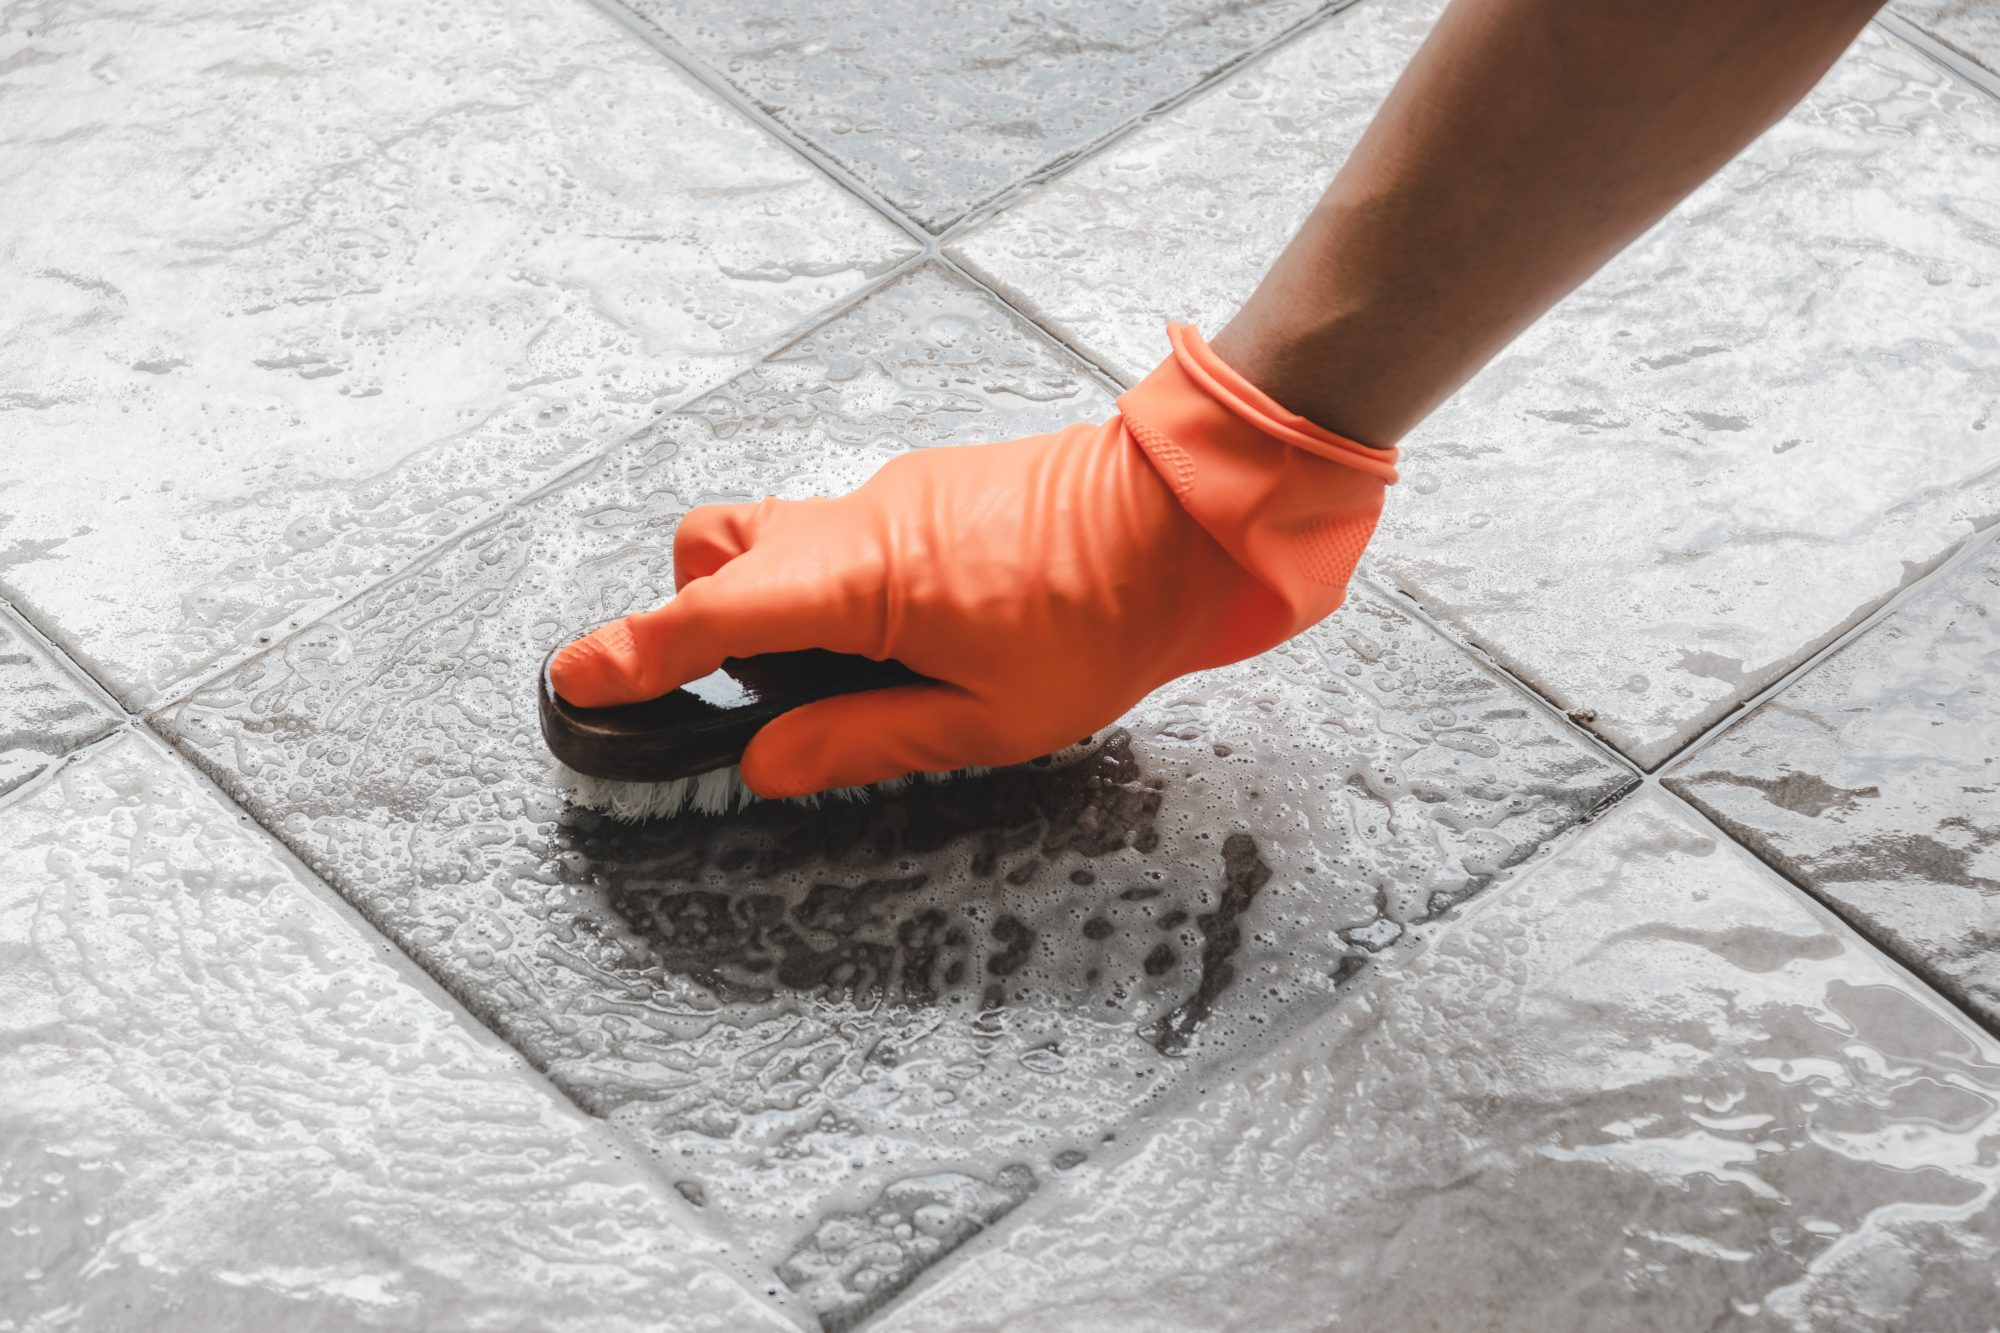 scrubbing bathroom tile floor